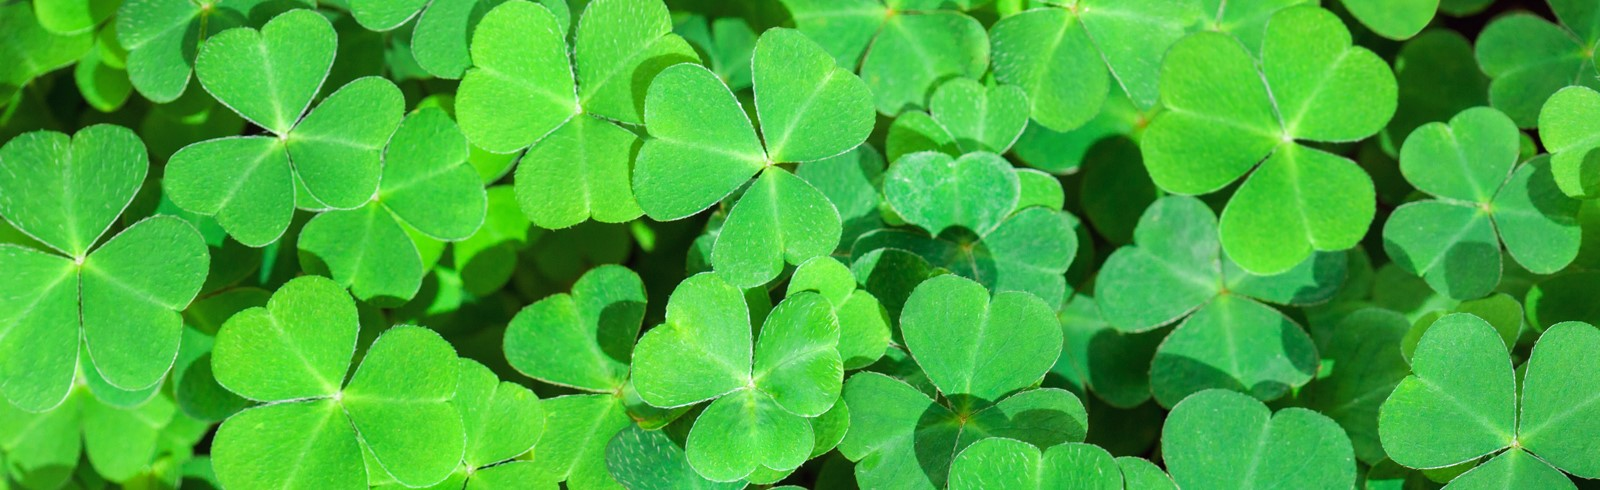 photo of green leaf clovers banner image